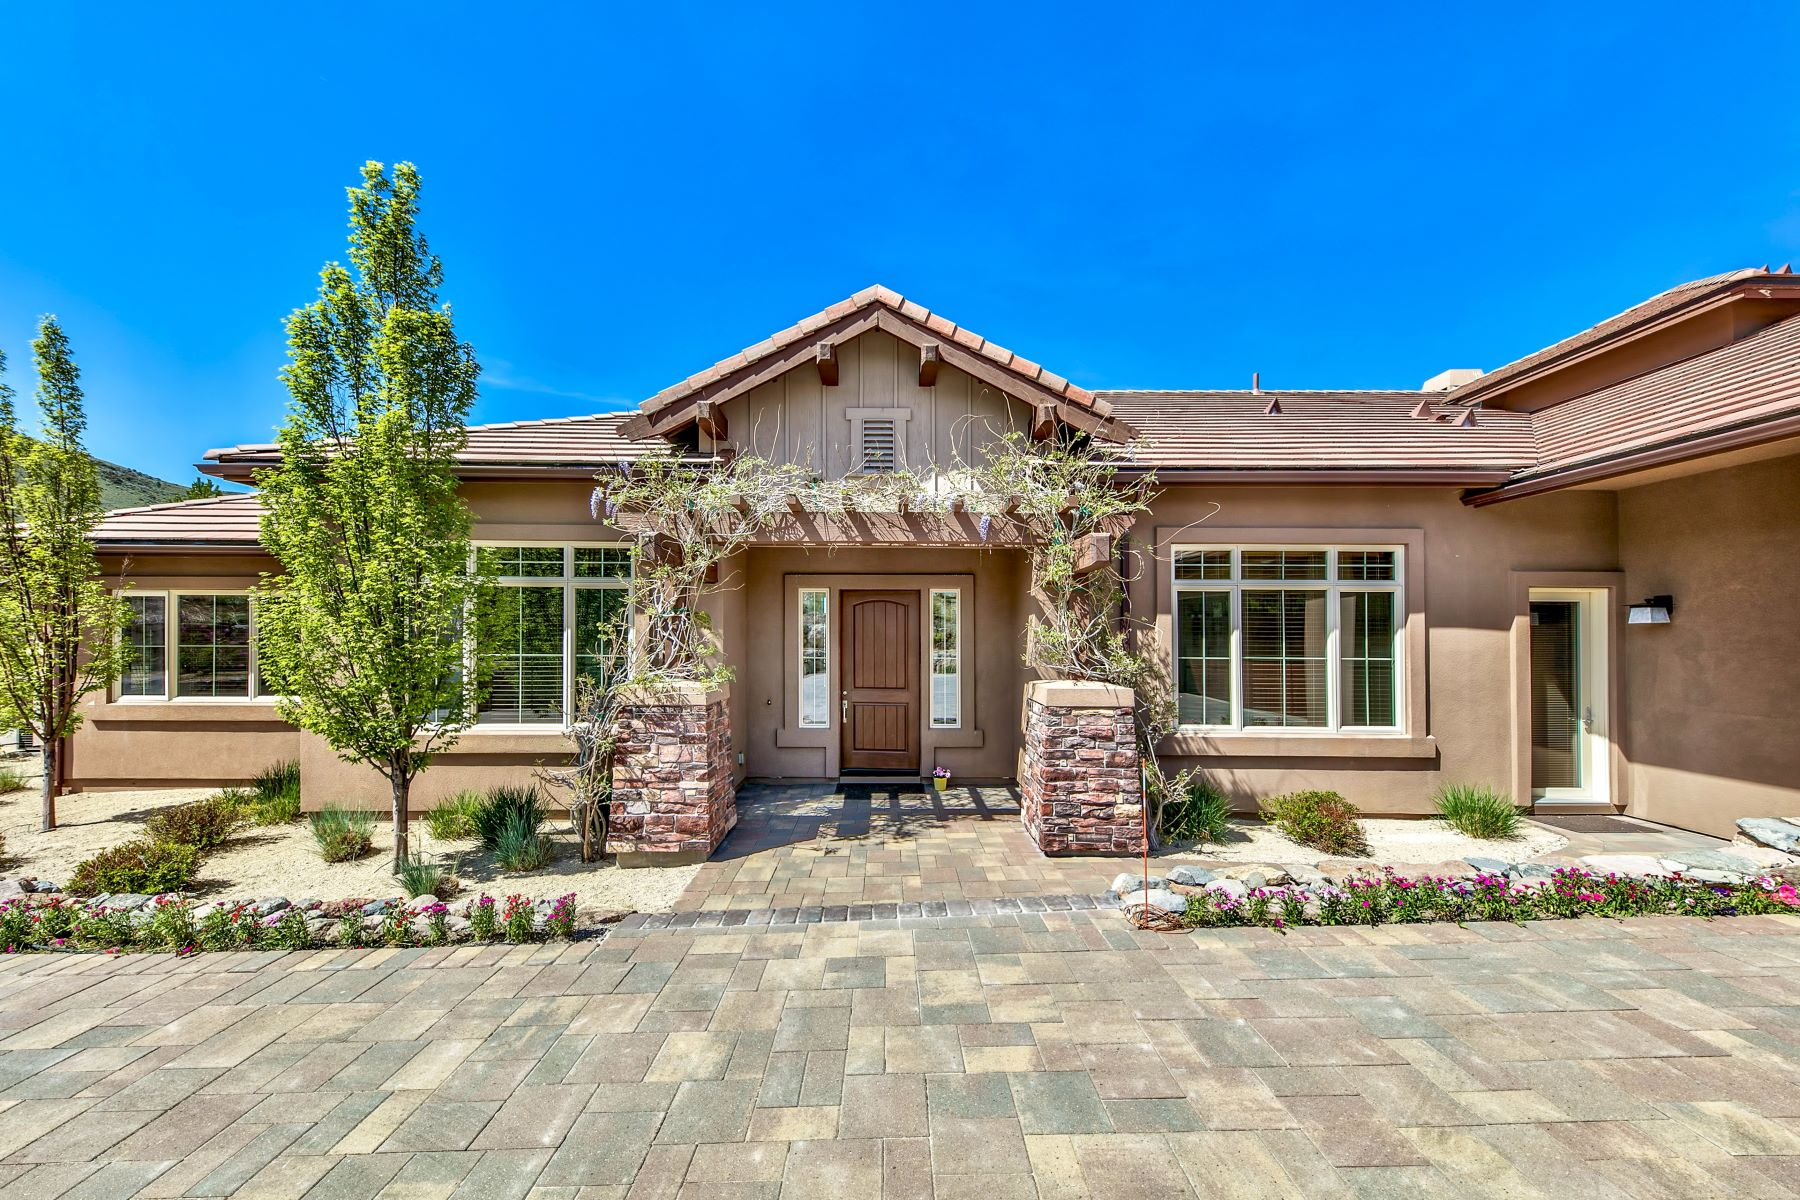 Additional photo for property listing at ArrowCreek Oasis 5900 Sunset Ridge Ct. 里诺, 内华达州 89511 美国